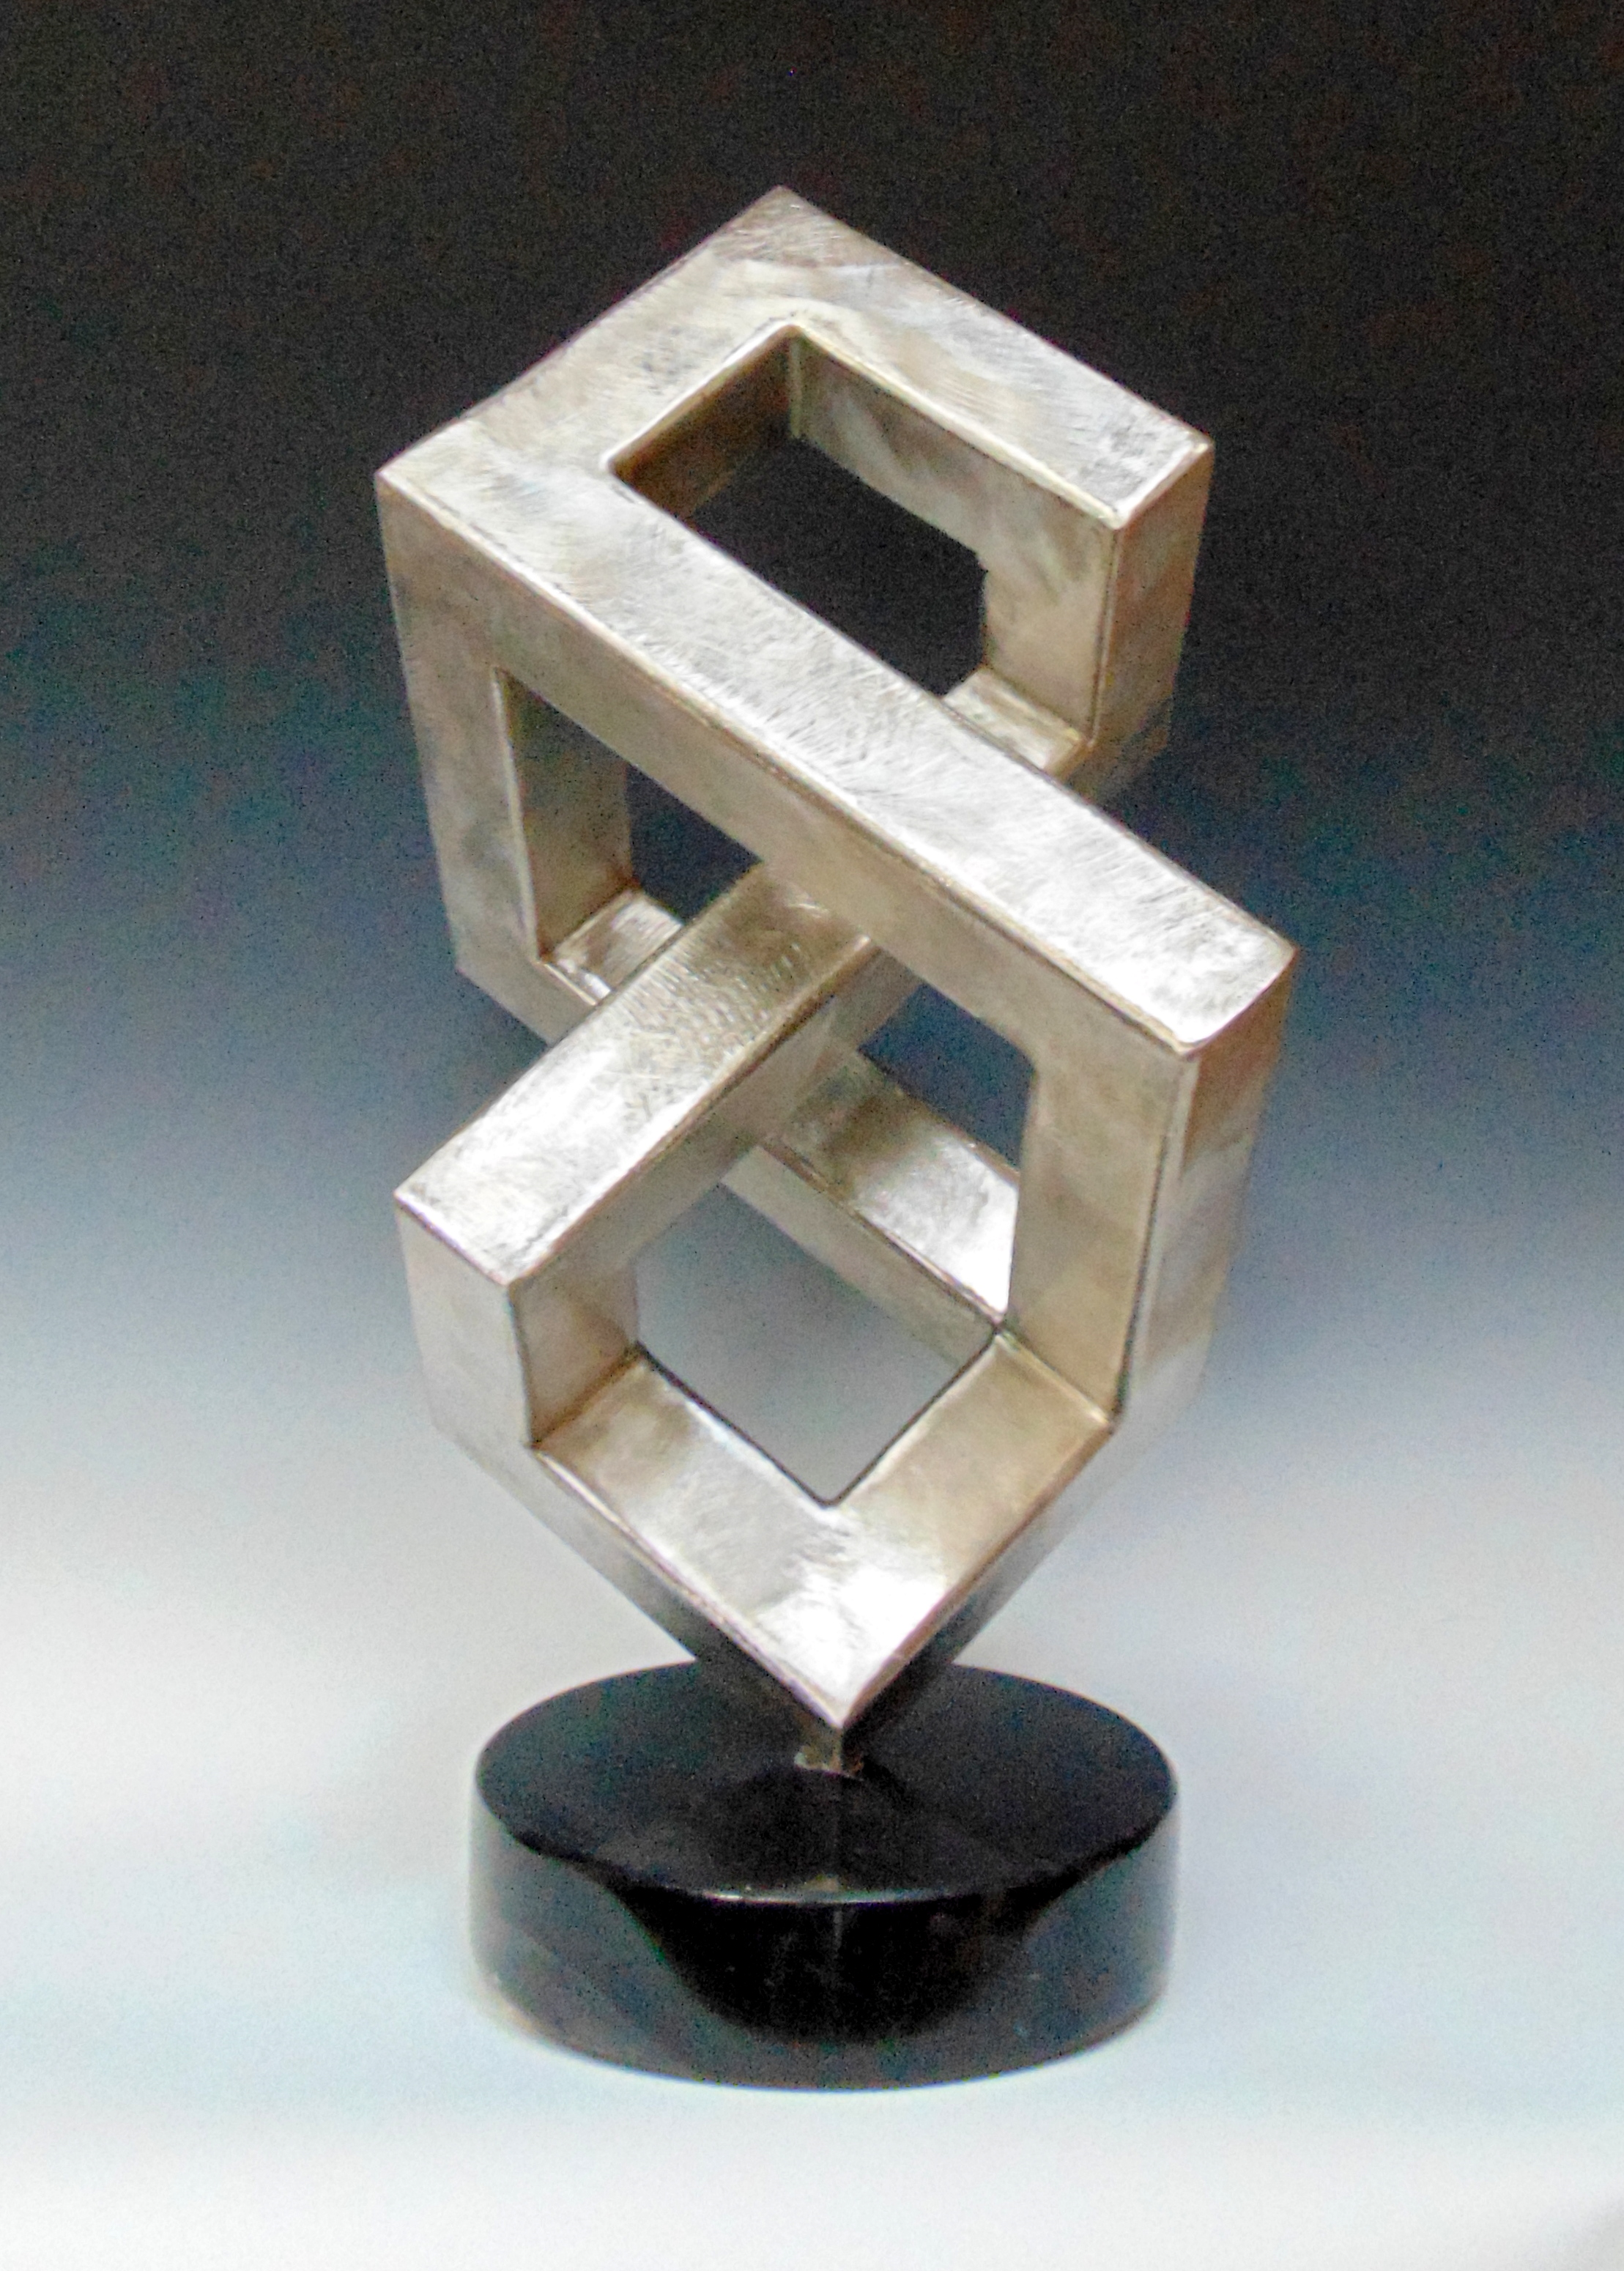 Sculpture Stainless Steel and Granite